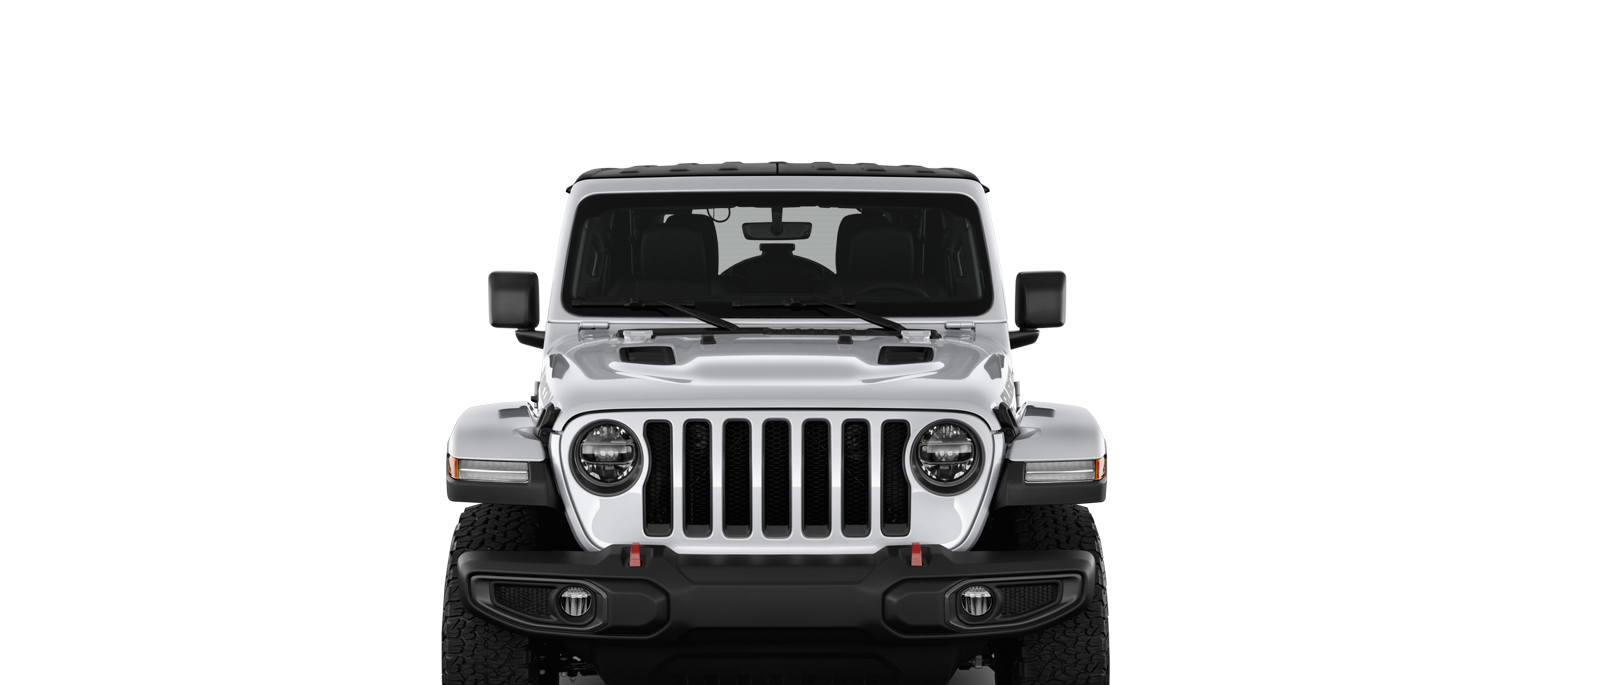 Jeep Wrangler Rubicon Car Rental Exotic Car Collection